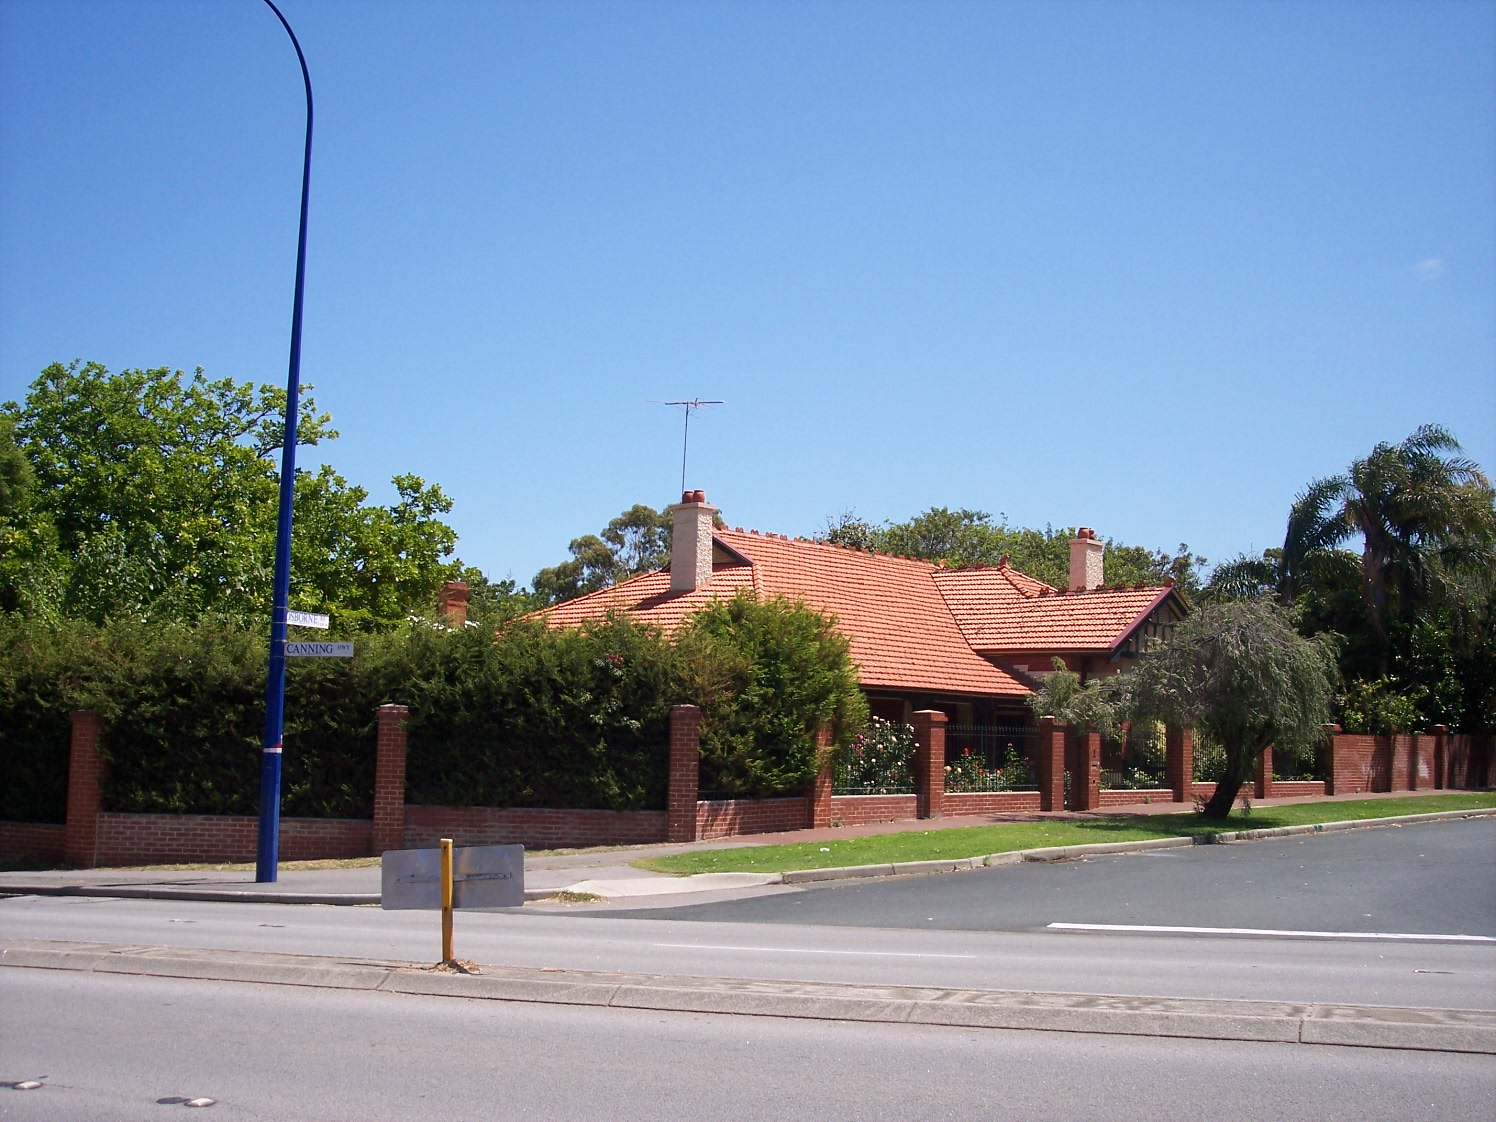 31-10-06 View N 1 Osborne Road.jpg